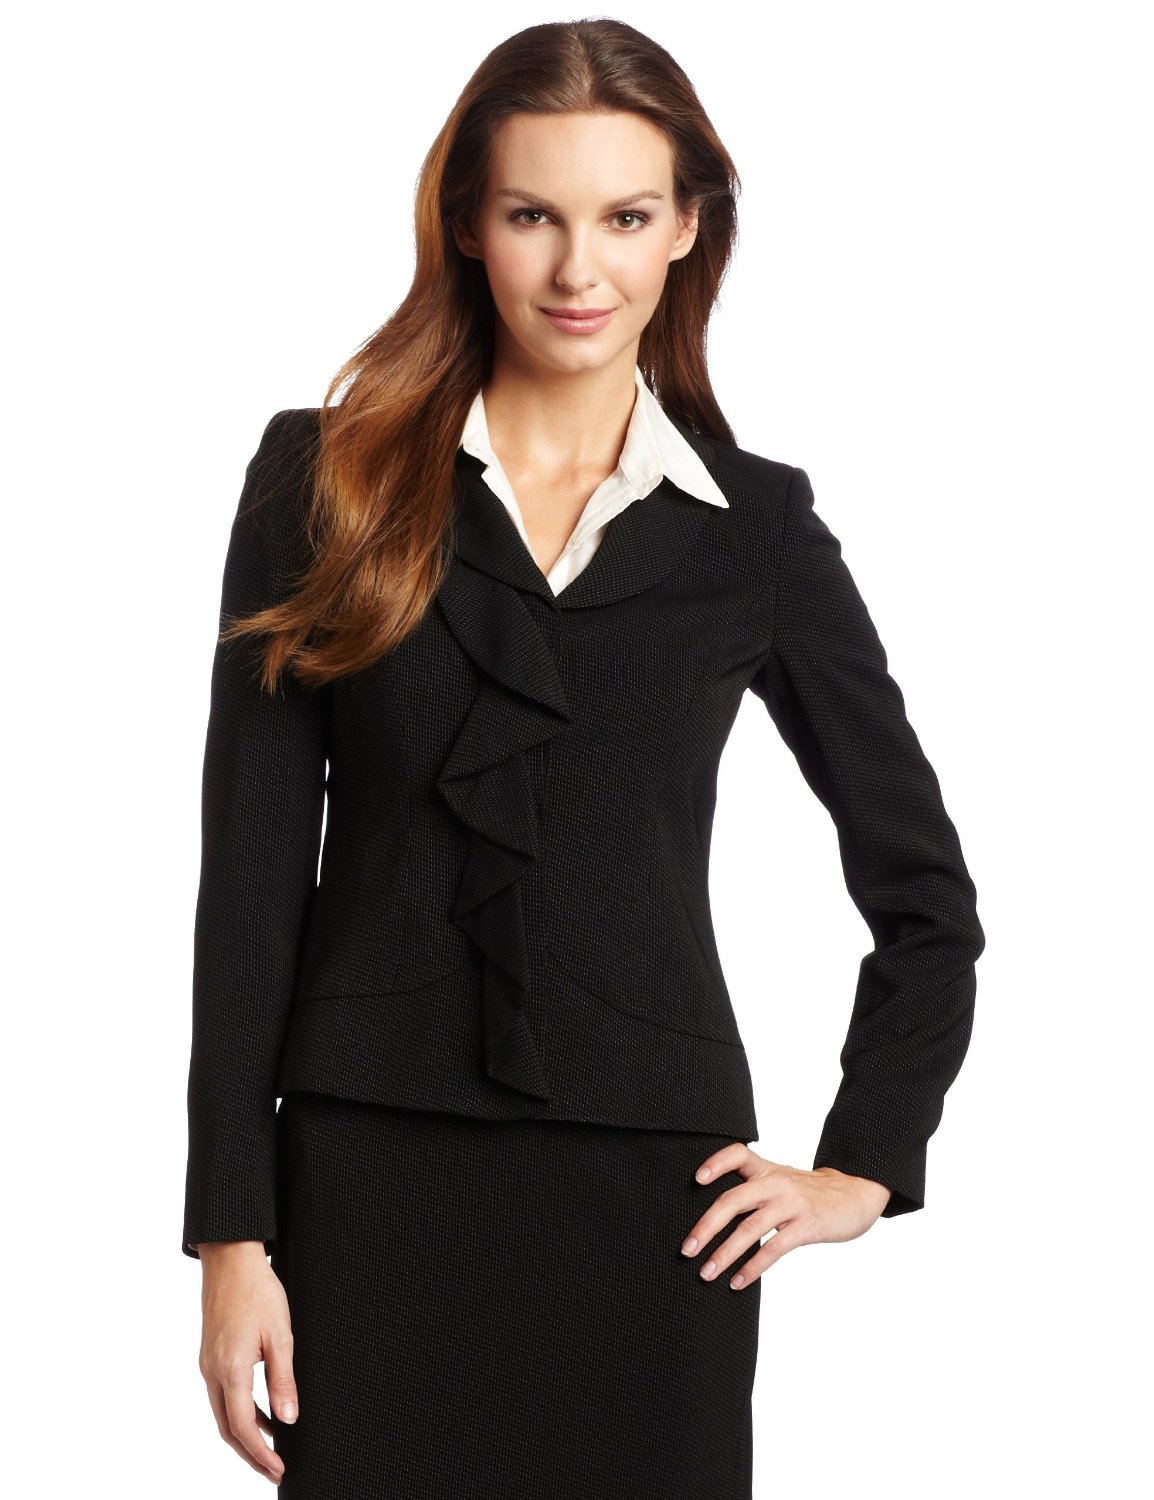 In this, suit sets for women are the most easy, comfortable, versatile and impressive to wear. There are so many designs and styles available in women's suits today that there's got to be one that suits .